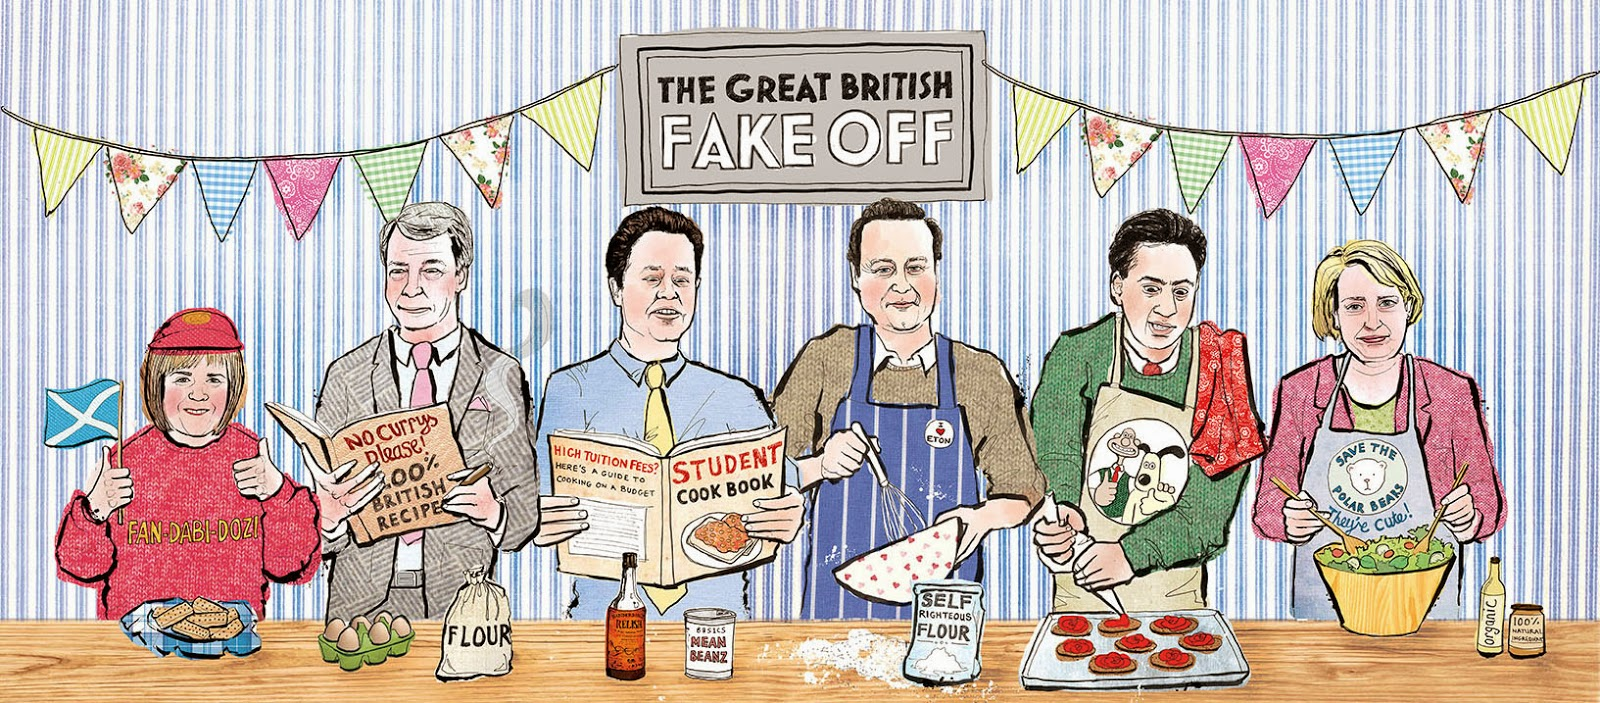 the great british fake off, the great british bake off, illustration, political illustration, politics, general election 2015, ge2015, government, art, lisa maltby, lisa maltby illustration